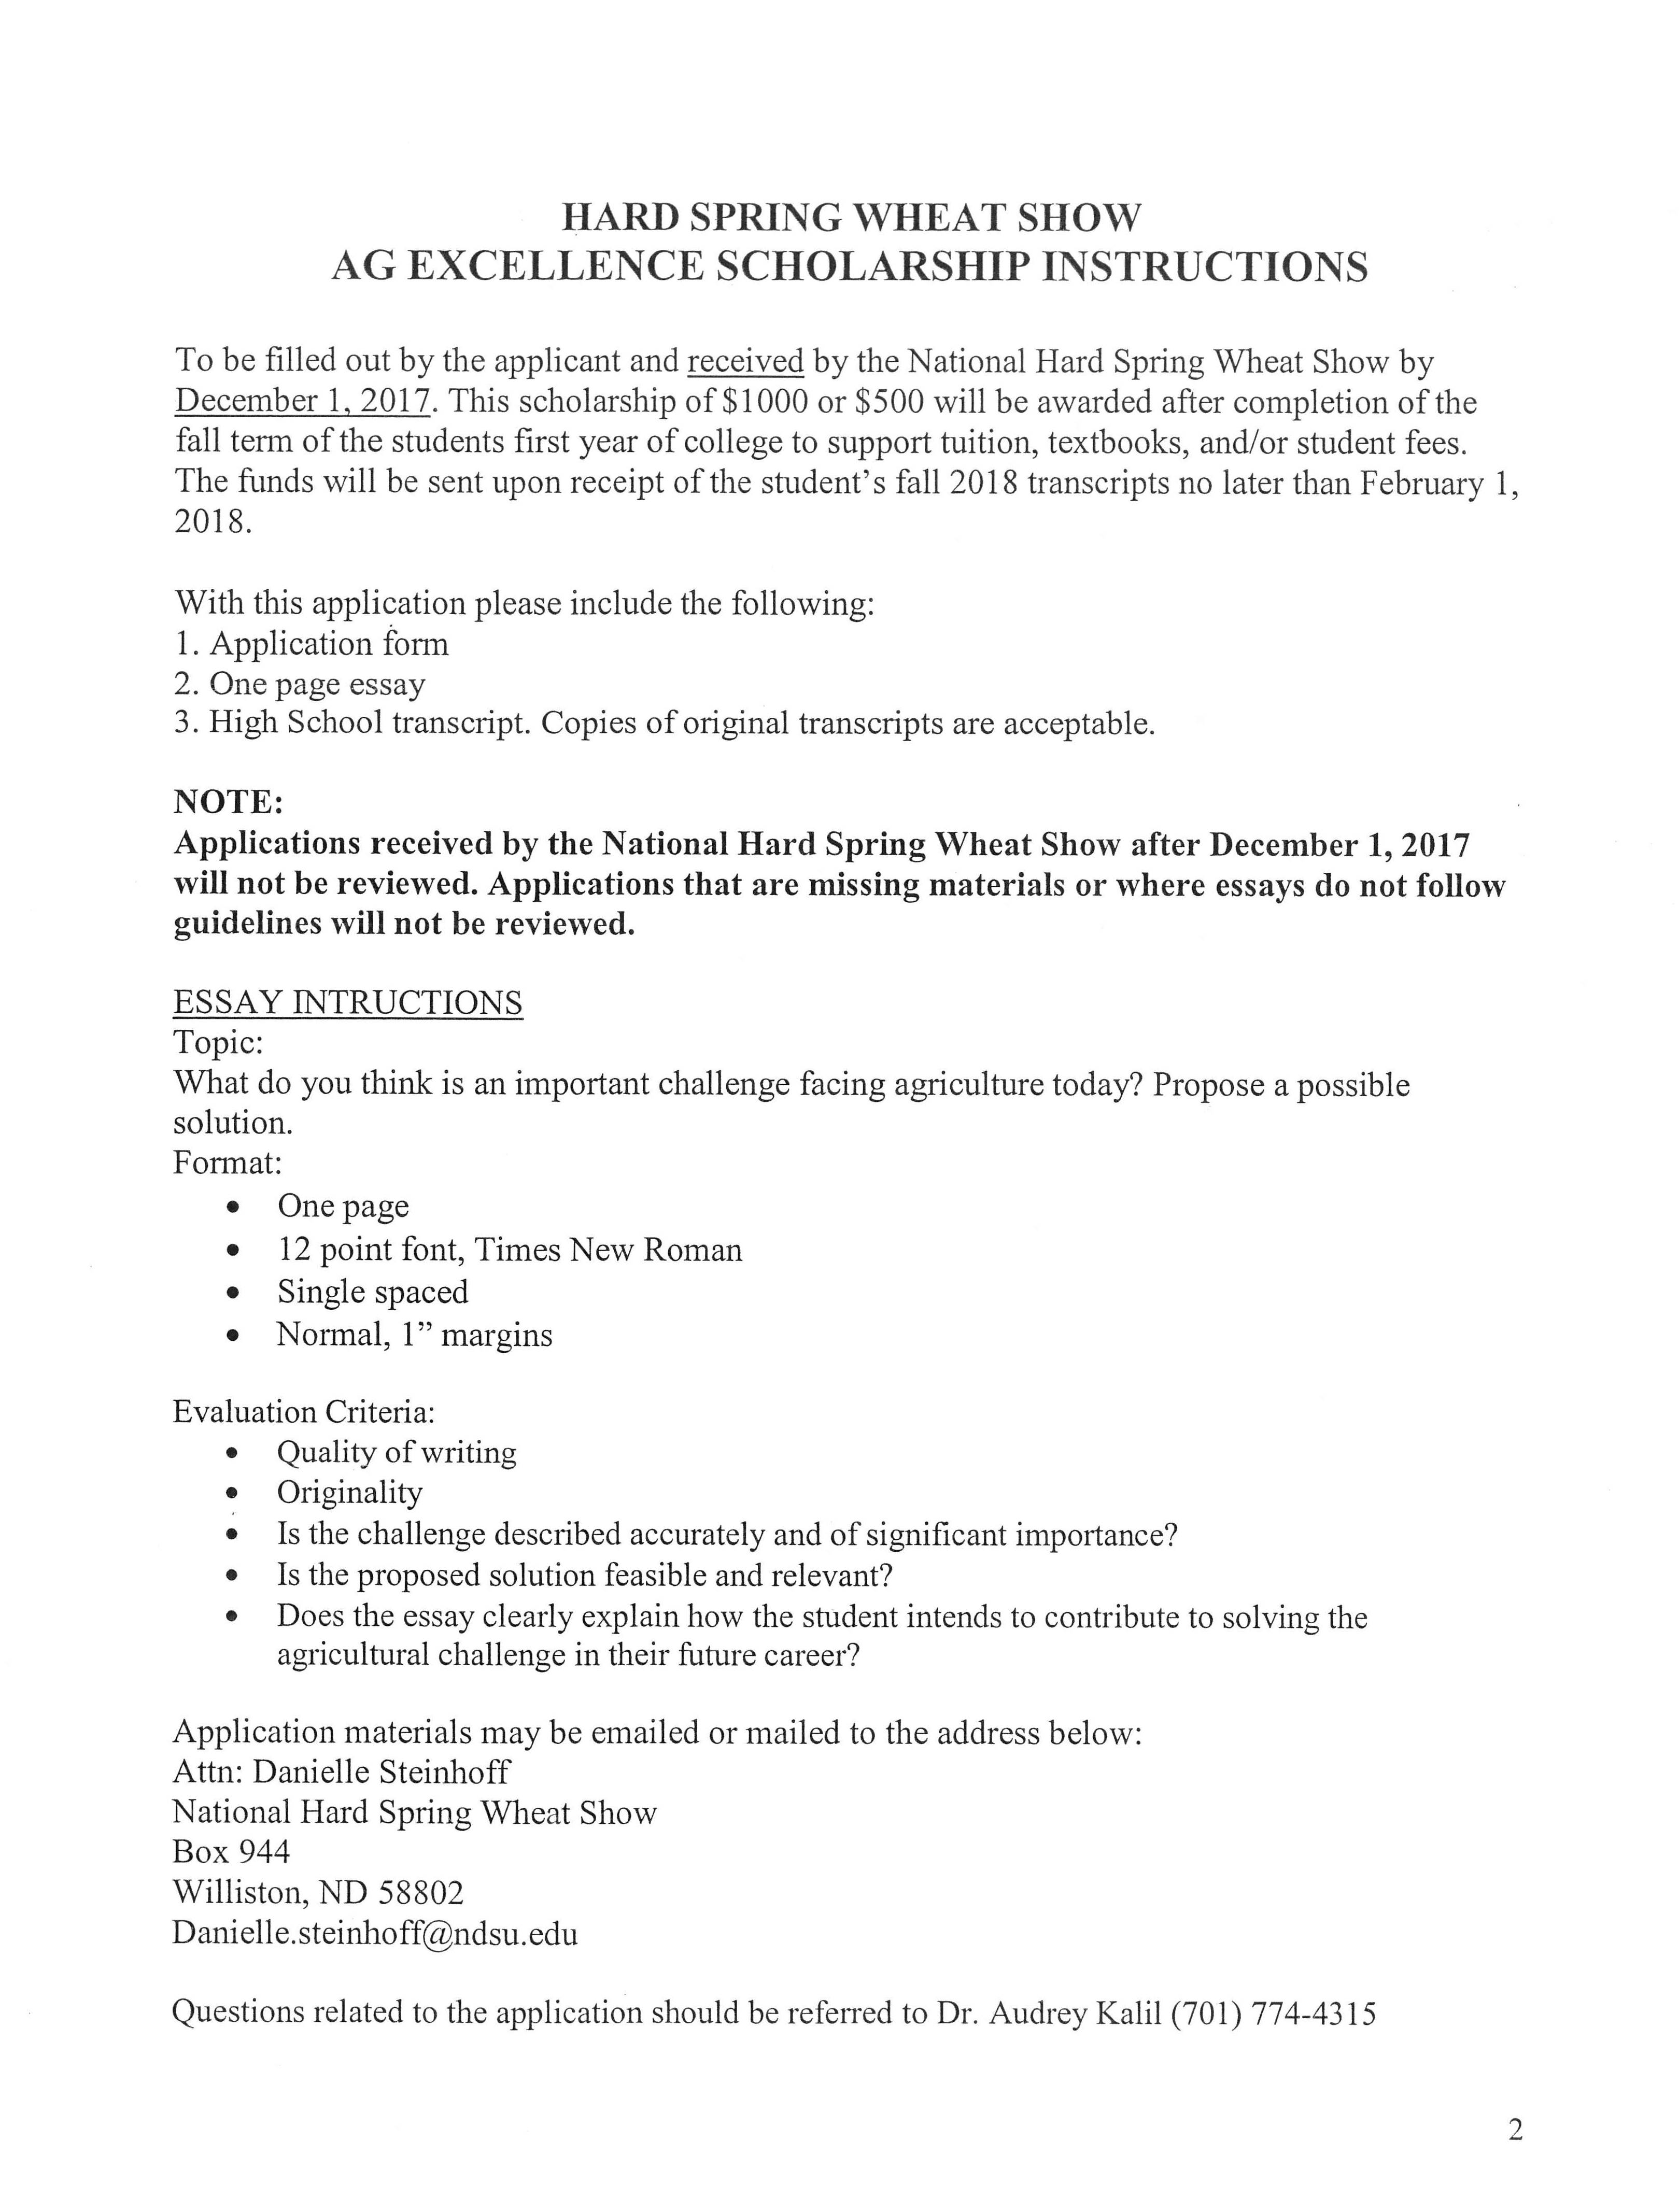 013 Scholarships Without Essays Essay Example Page 2 Stunning Requirements No Required In Texas Full